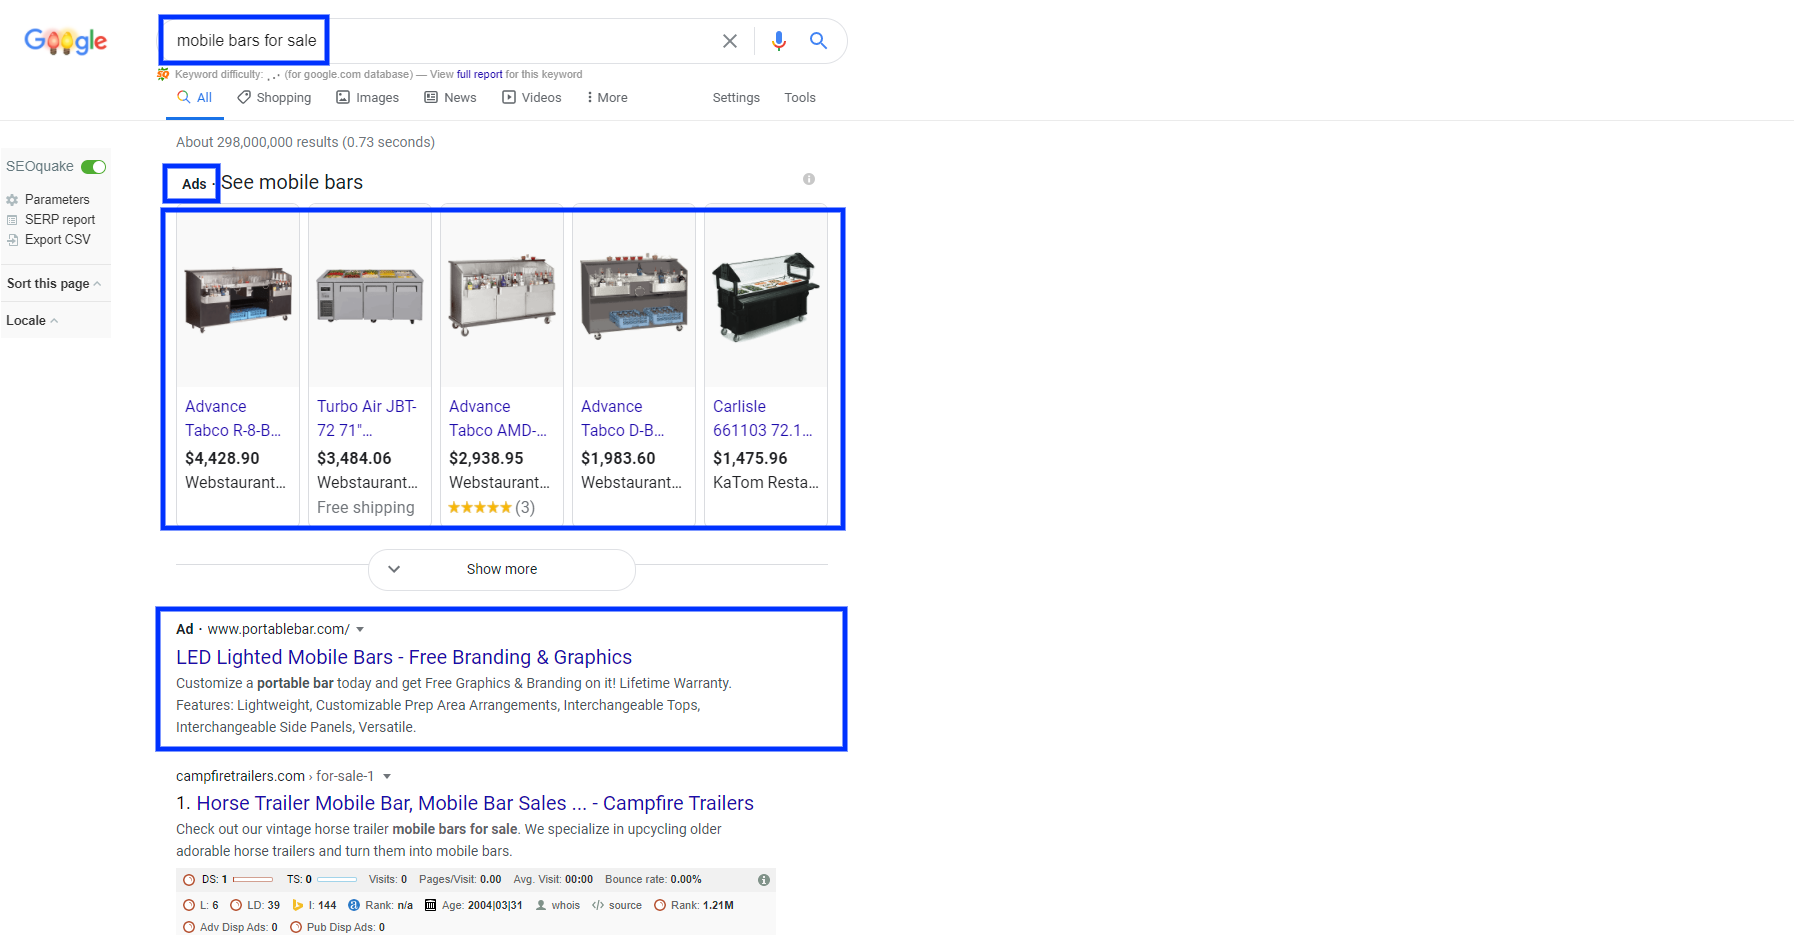 Here is a screenshot of paid search ads and product ads on the Google Ad Network.